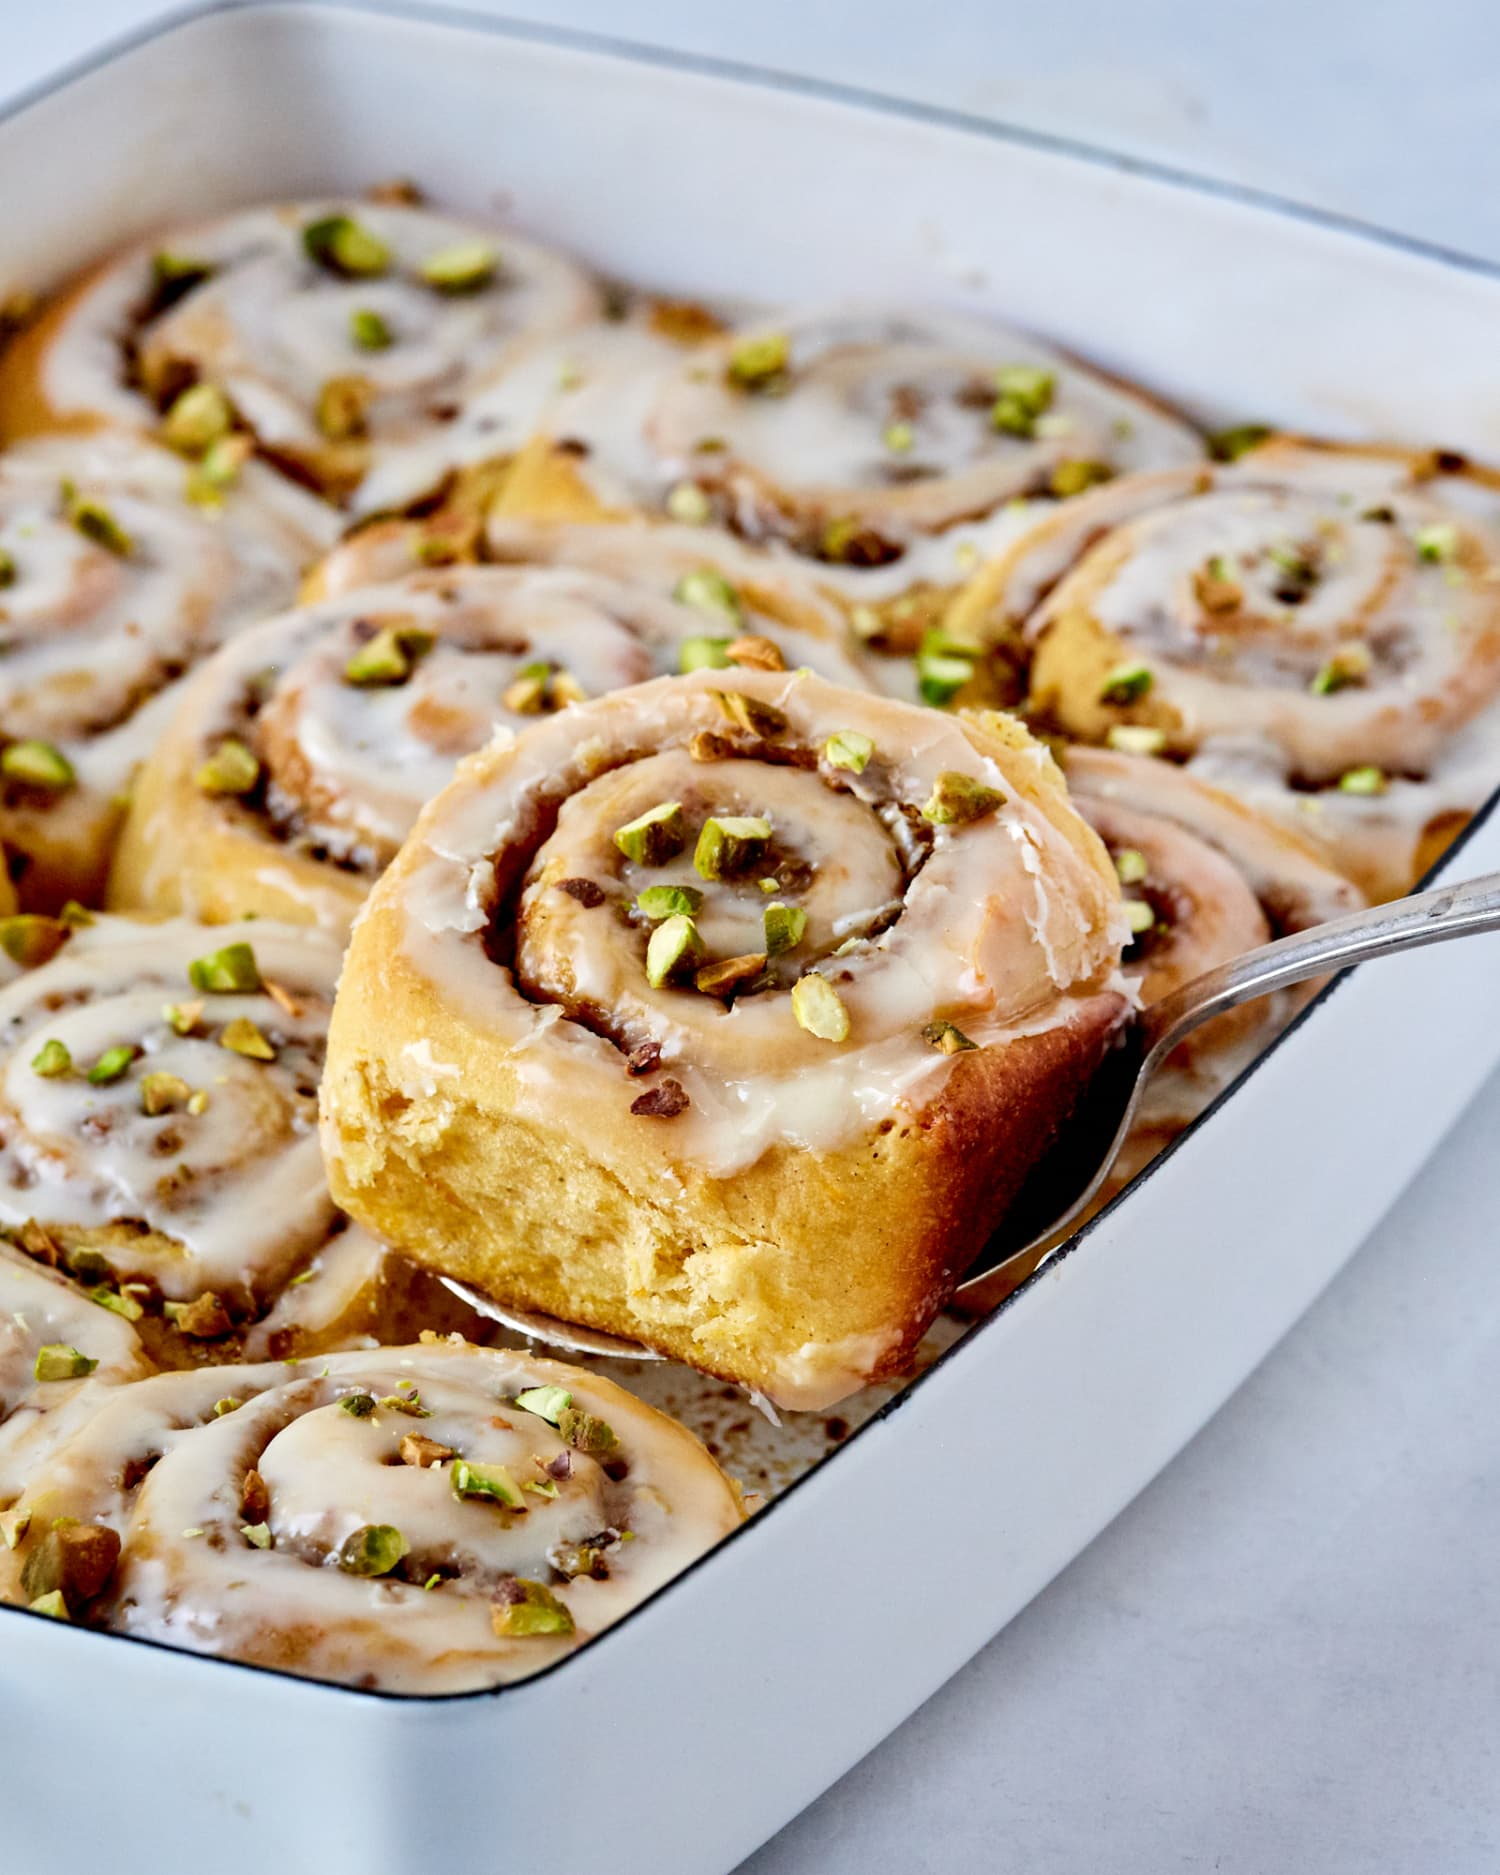 Sweet Potato Cardamom Buns with Pistachio and Orange Are Foolproof